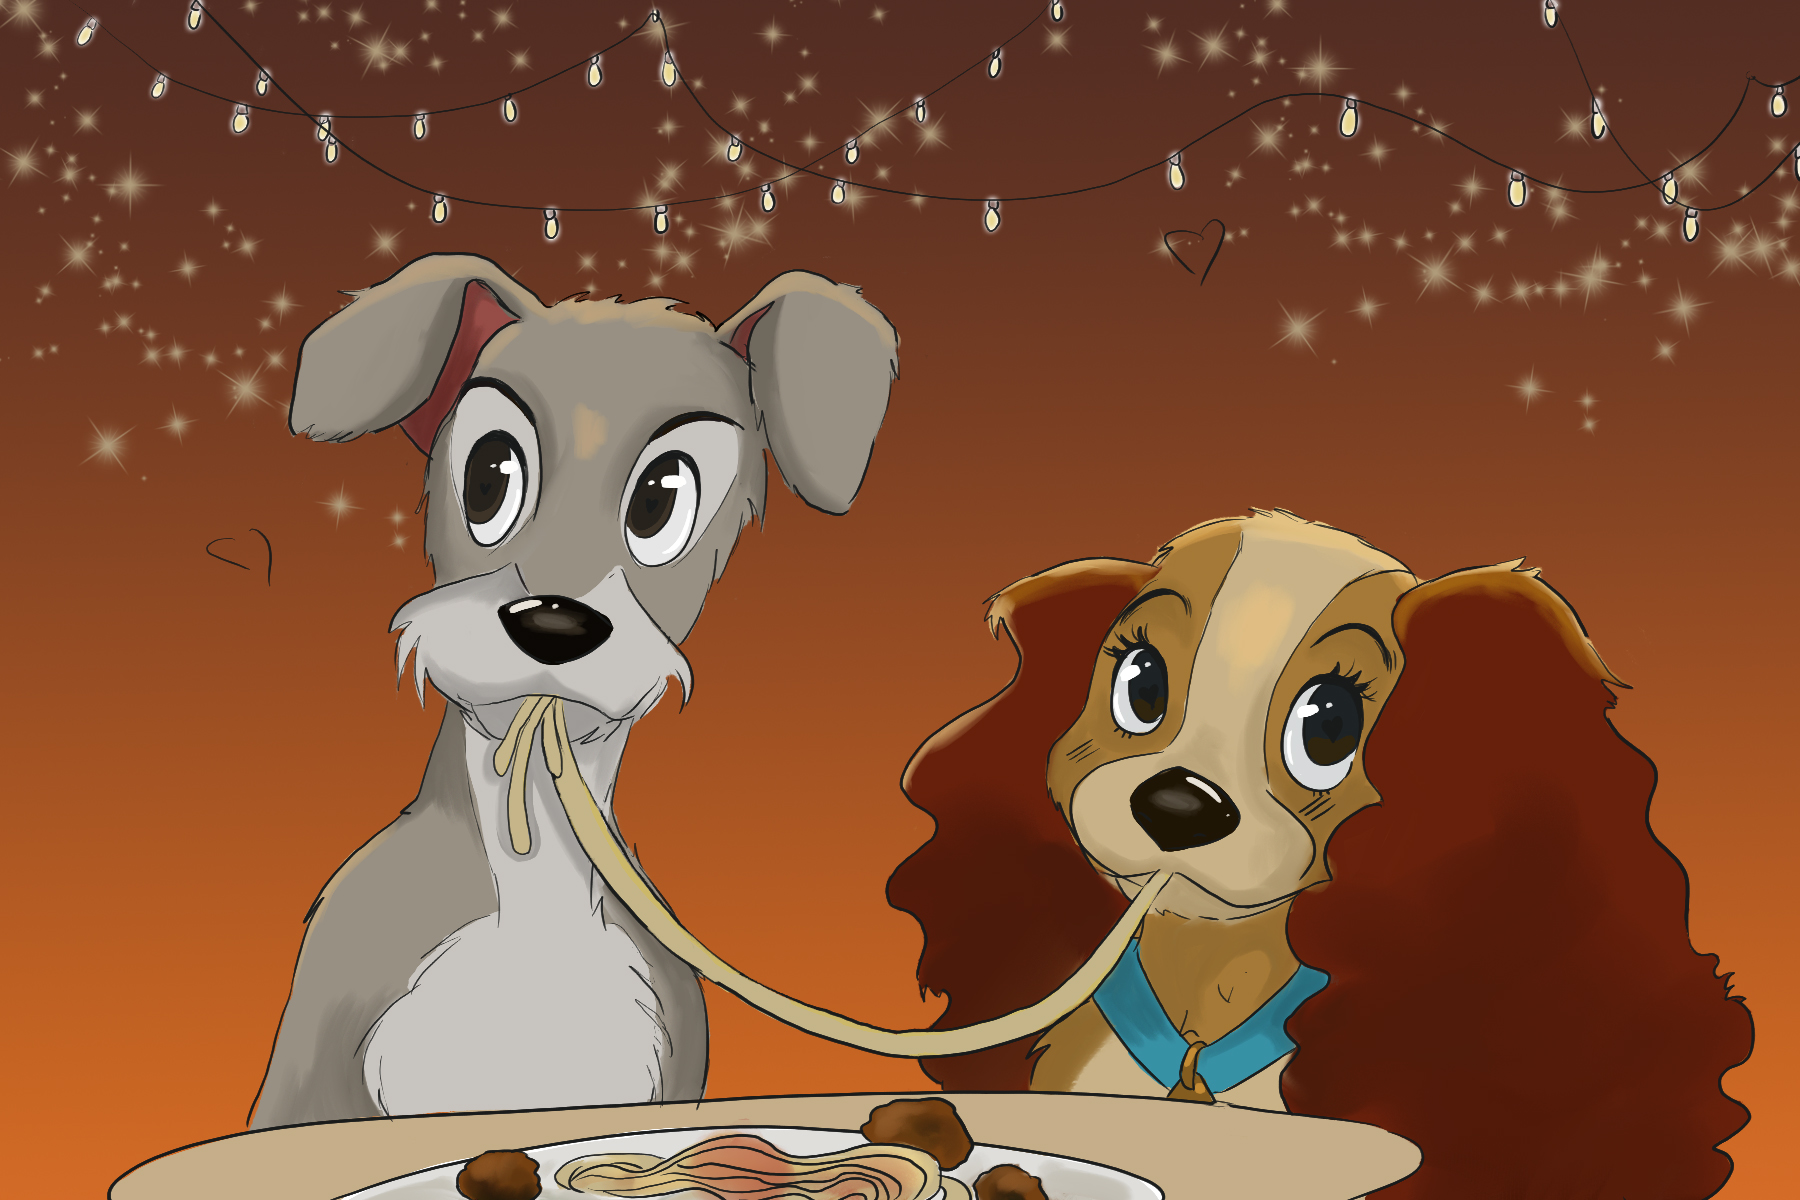 Lady and the Tramp illustration by Ashawna Linyard for Caleb Dukes' article